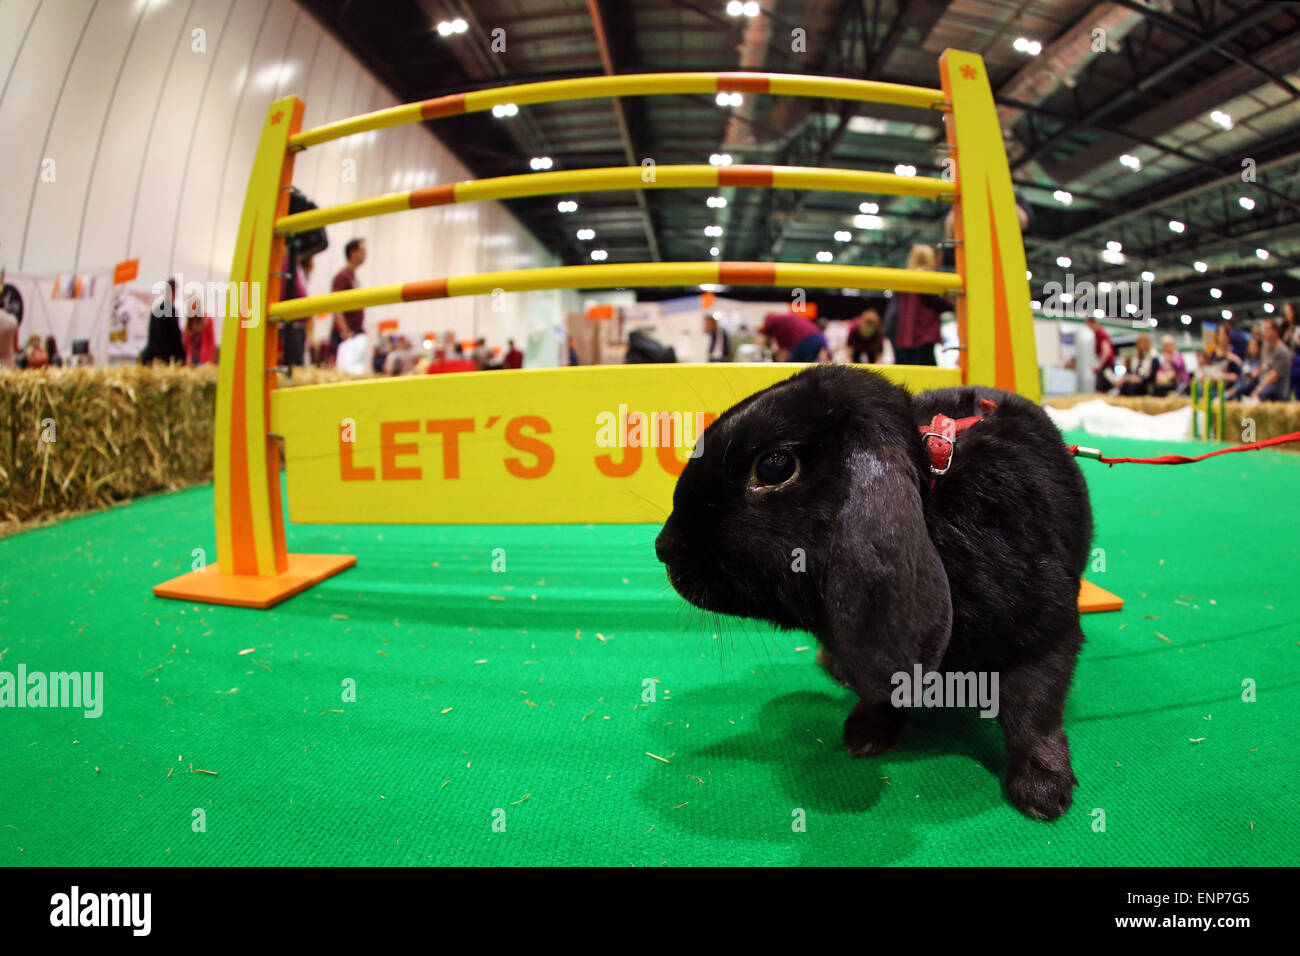 London, UK. 9th May 2015. Showjumping rabbits from Sweden at the London Pet Show 2015 at Excel, London, England - Stock Image